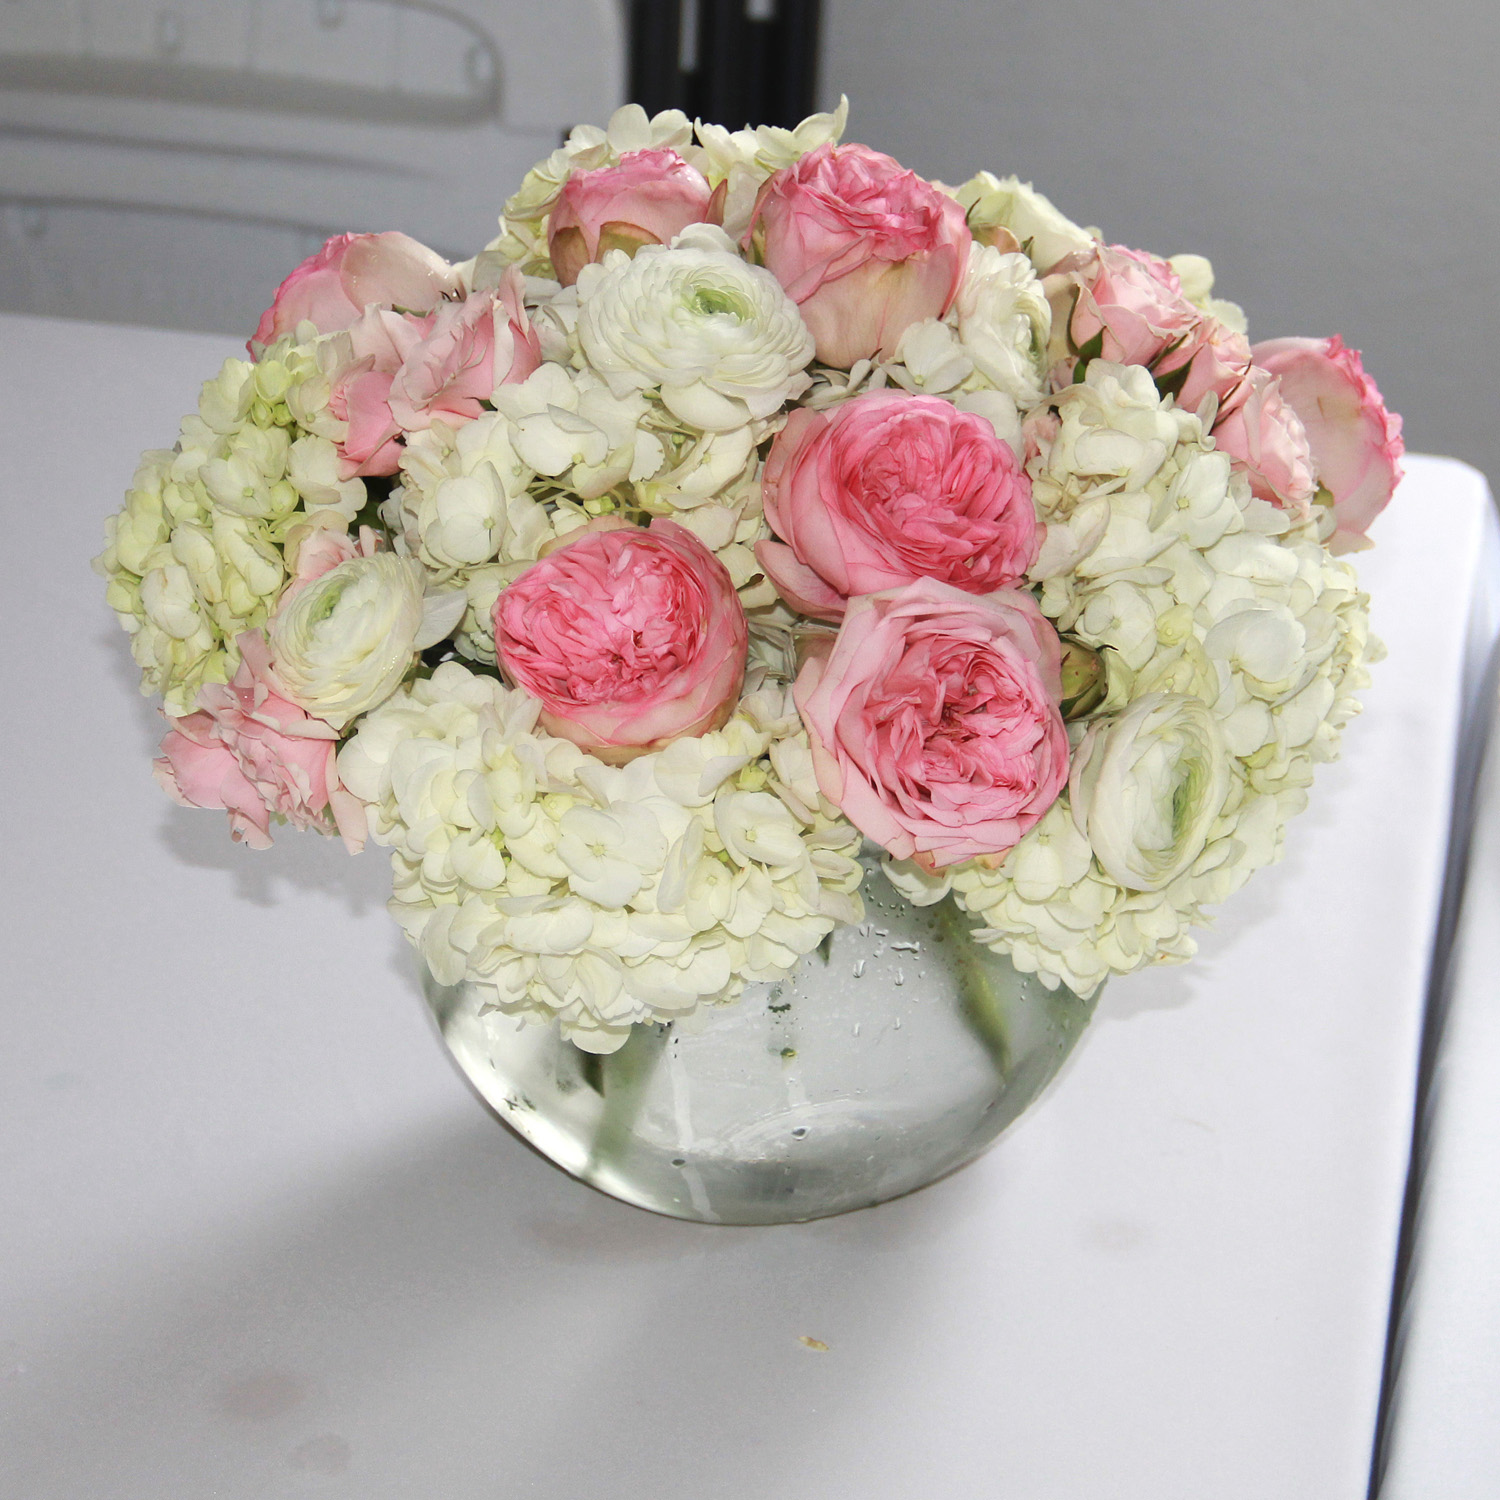 Pink Amish Wedding Flowers-Middlefield Ohio-Flowers by Emily .JPG